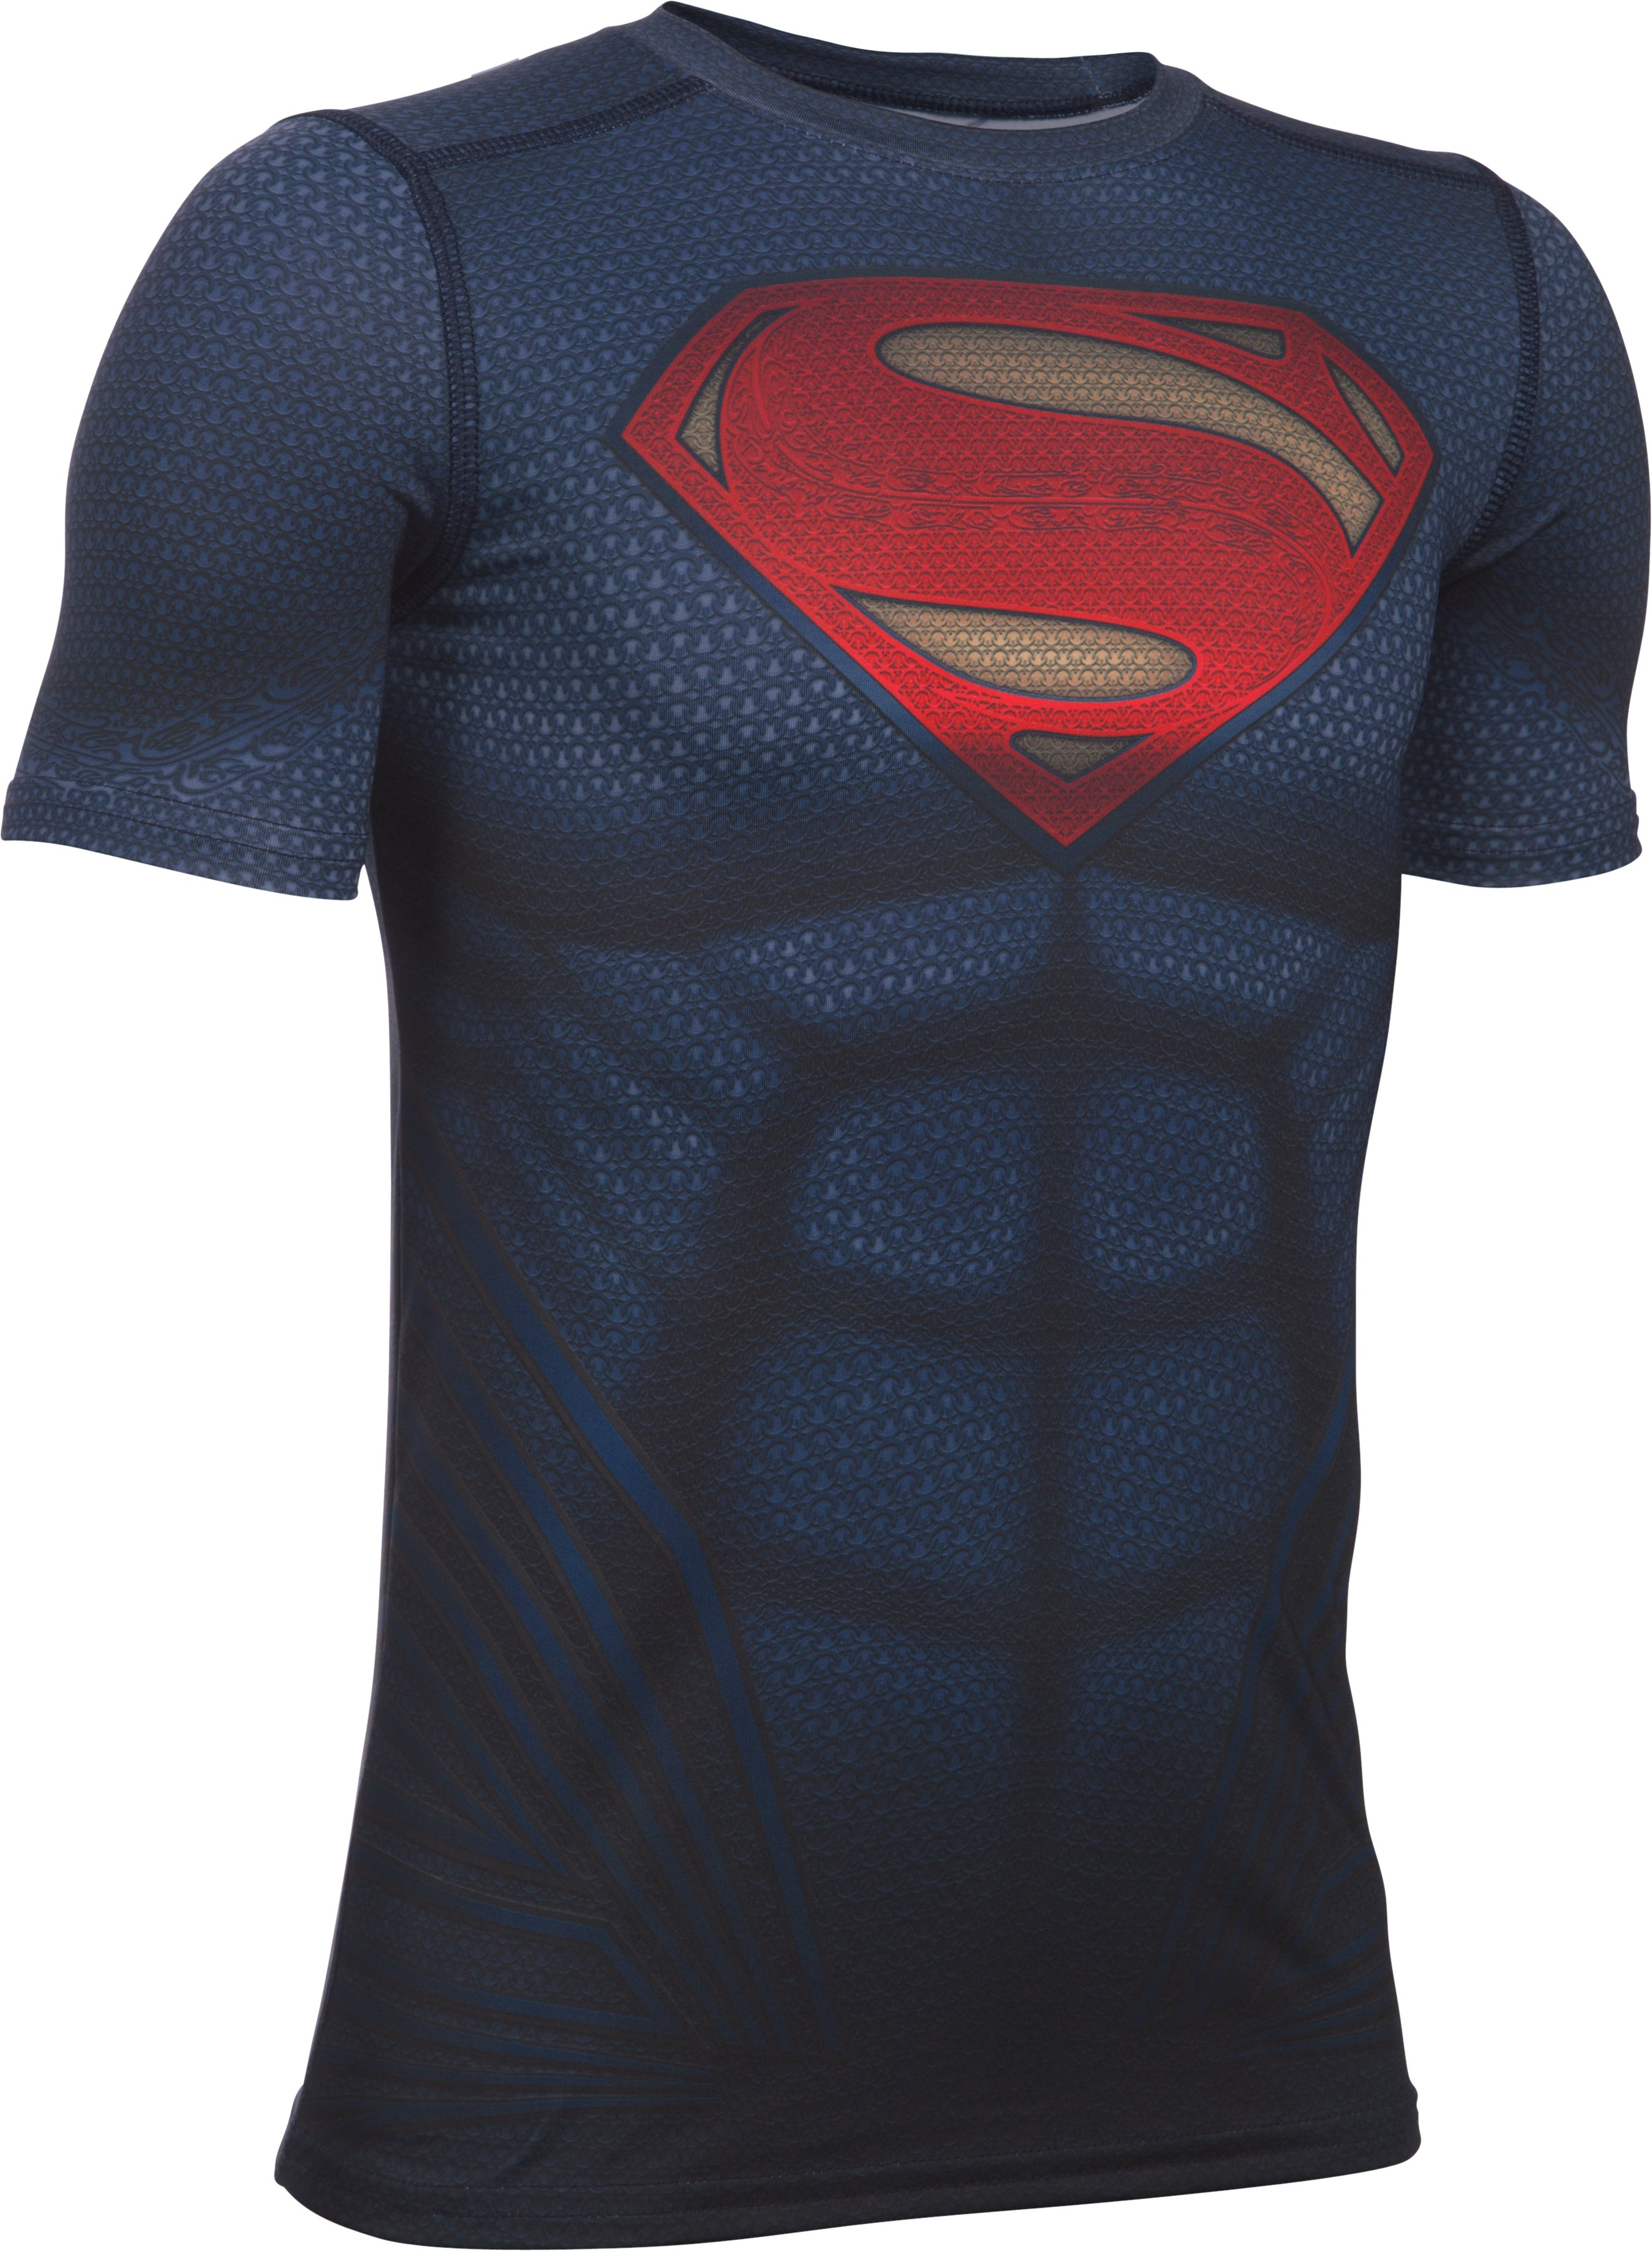 Boys' Under Armour® Superman Fitted Shirt, Midnight Navy,